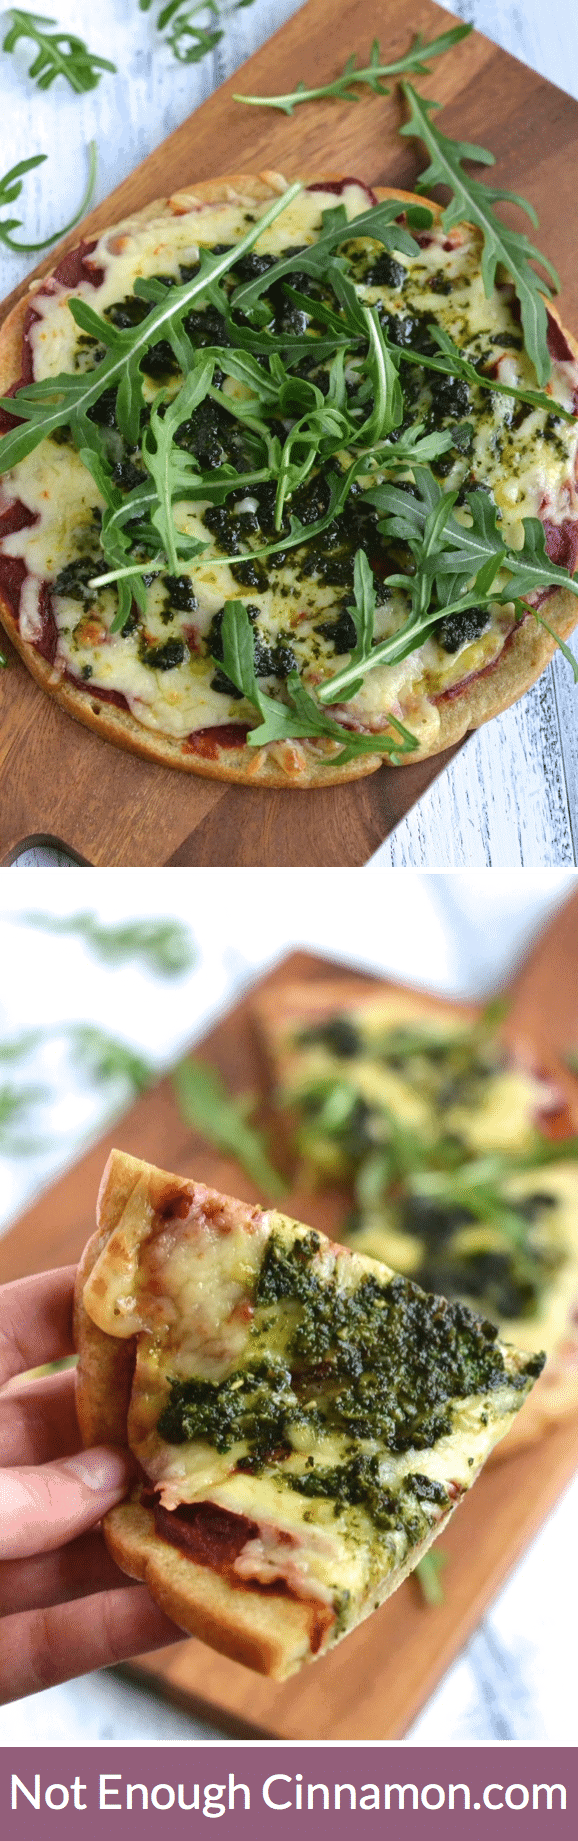 Foolproof quinoa pizza crust made with only 5 ingredients. Gluten free and vegan. | Find the recipe on NotEnoughCinnamon.com